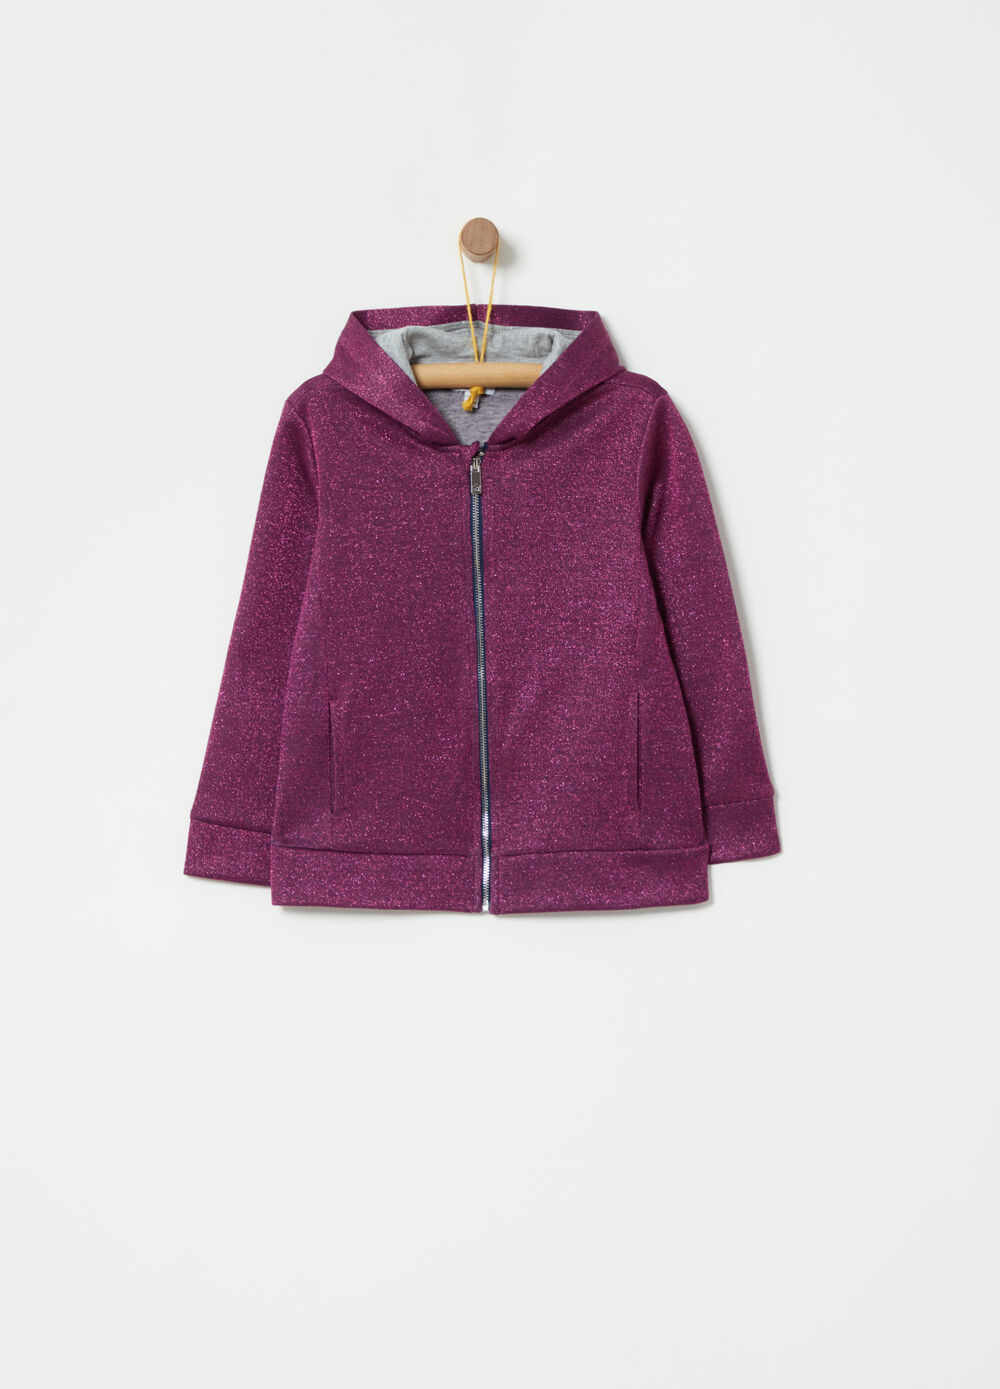 Sweatshirt with lurex and zip fastening